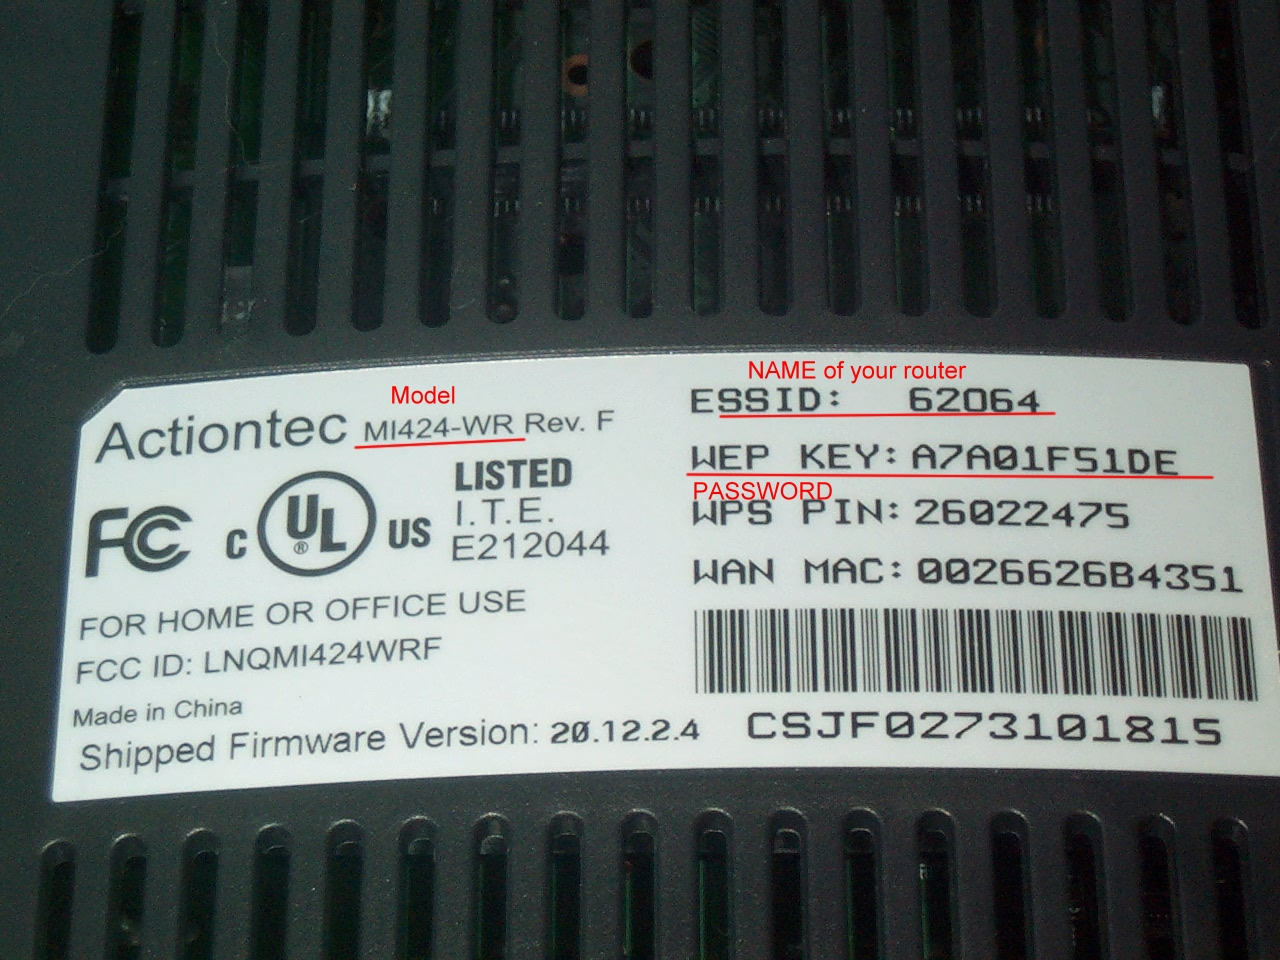 I HAVE PURCHASED A PANASONIC 65 INCH VIERA TV I HAVE ALSO